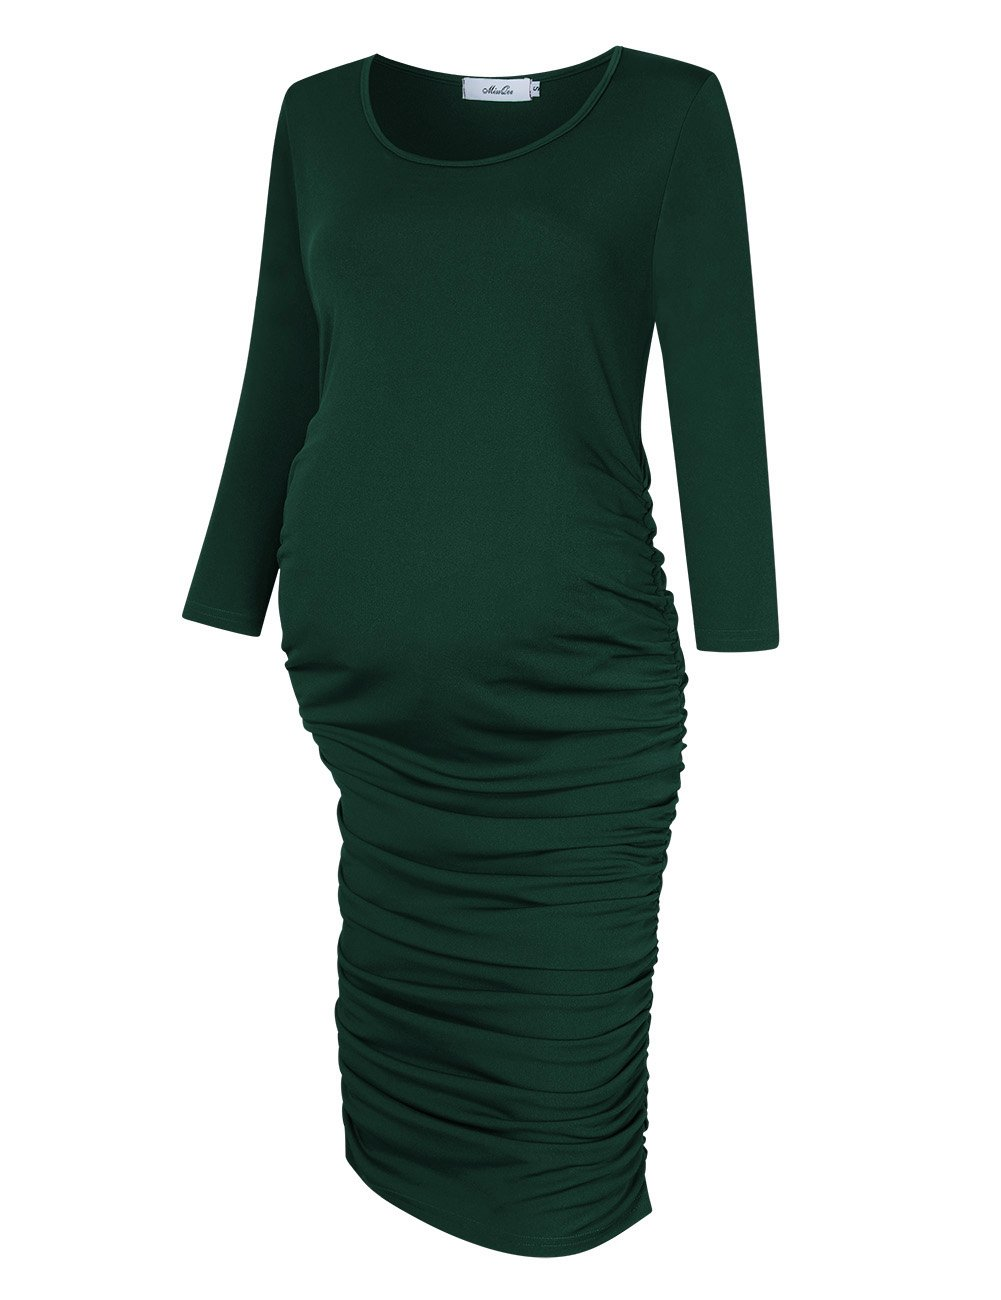 MissQee Ruched Maternity Dress Round Neck Maternity Dress 3/4 Sleeve Maternity Dresses (M, Dark Green)